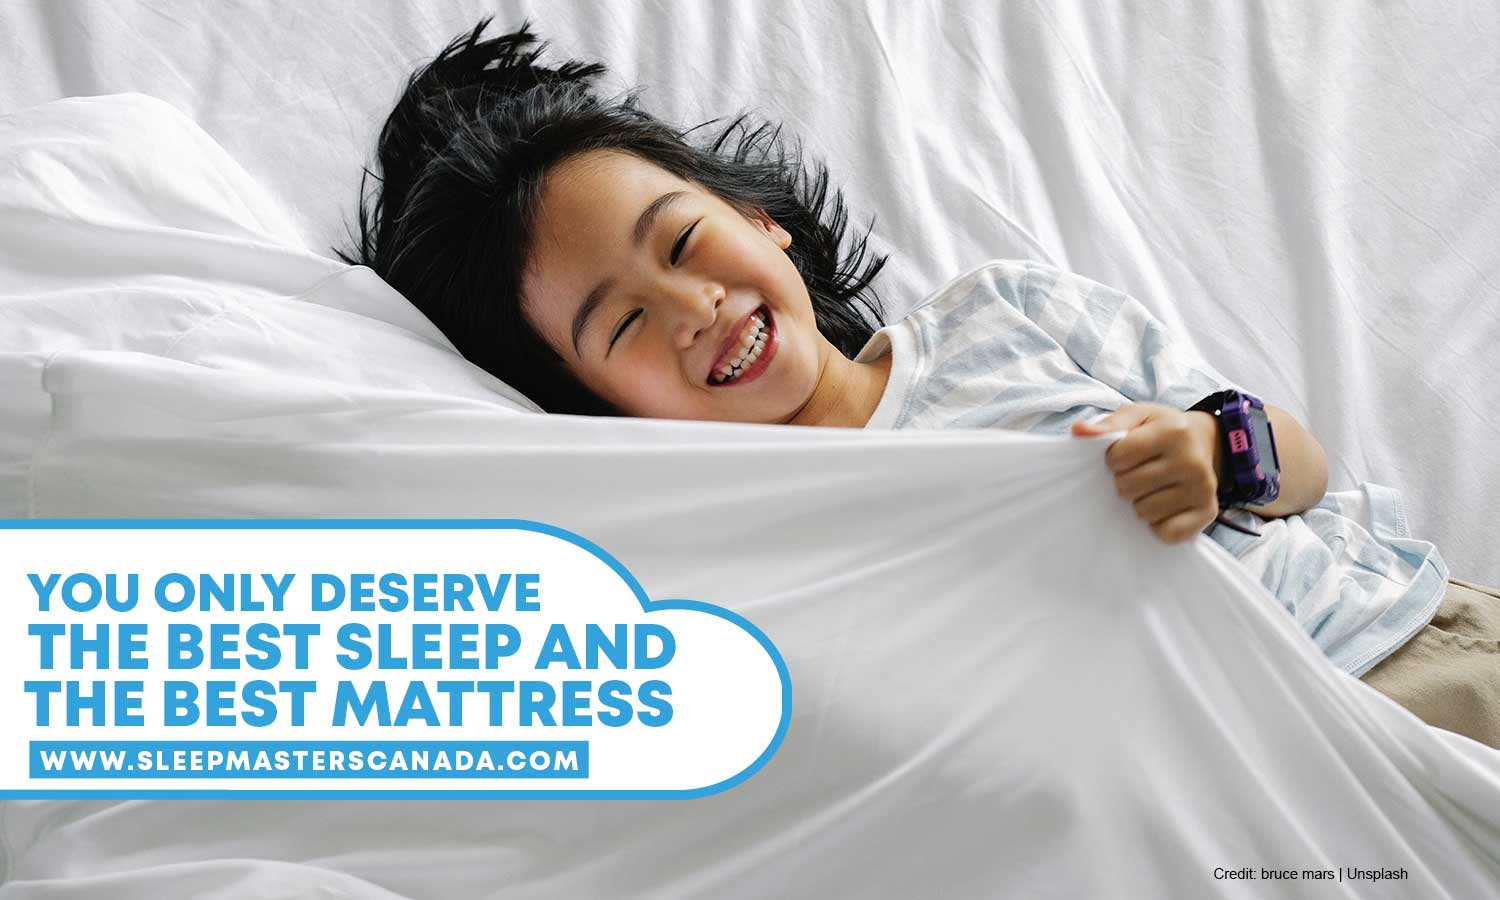 You only deserve the best sleep and the best mattress